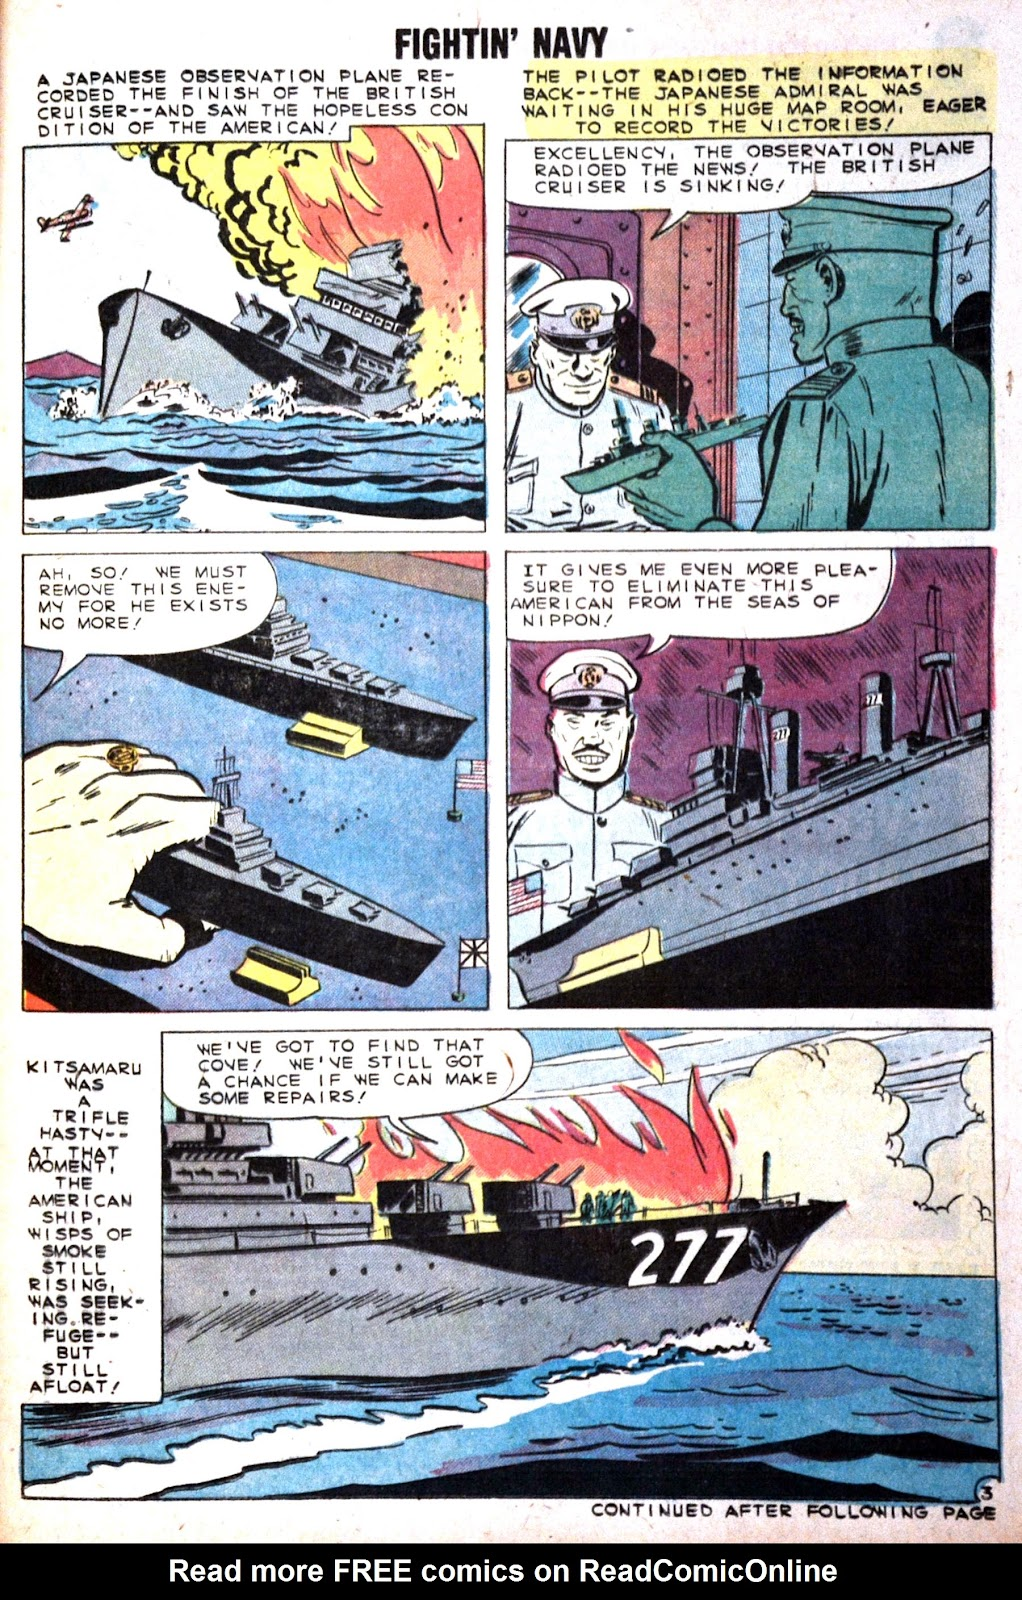 Read online Fightin' Navy comic -  Issue #89 - 21